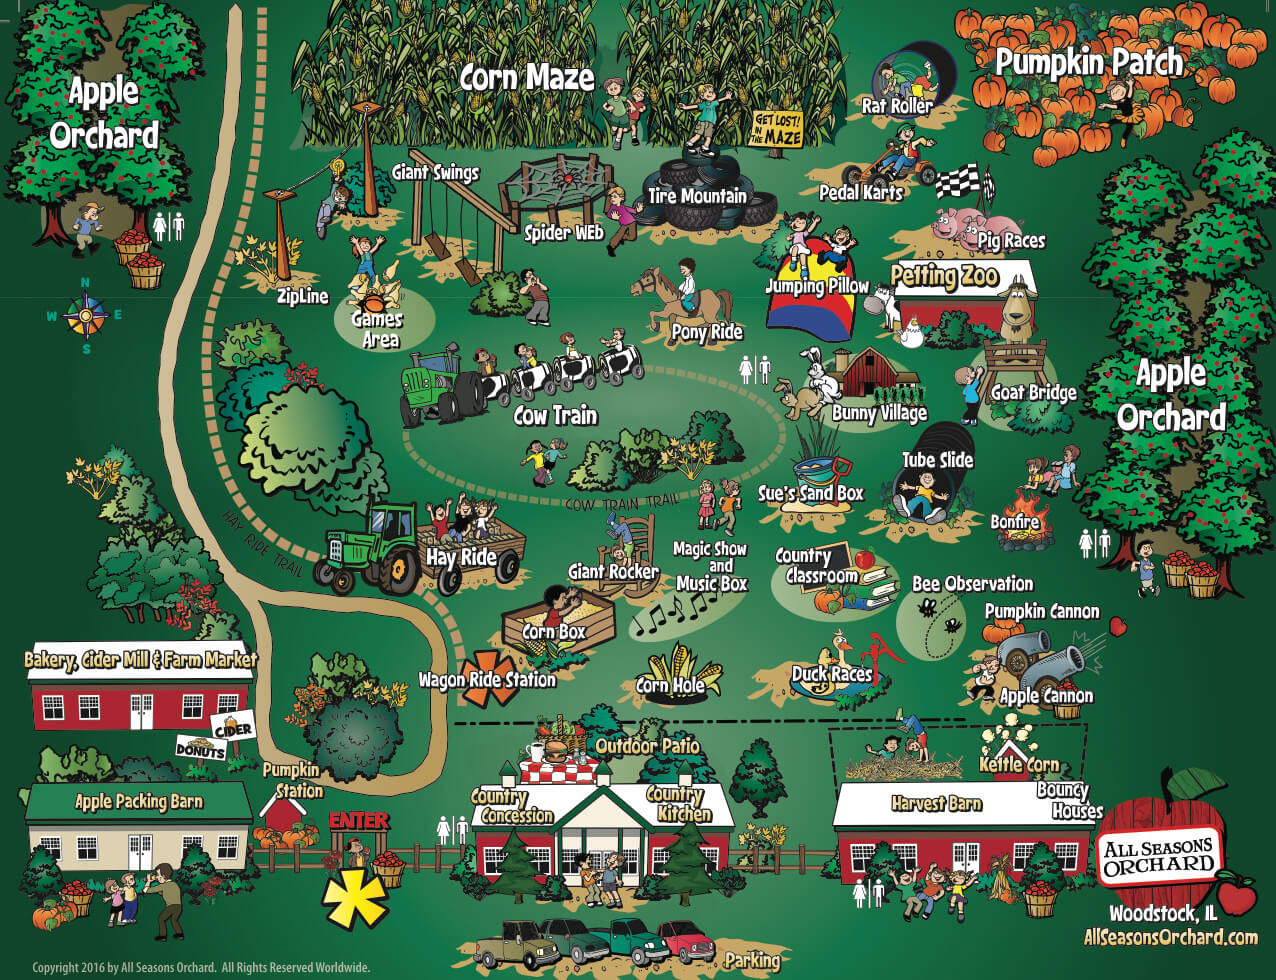 All Seasons Orchard Map